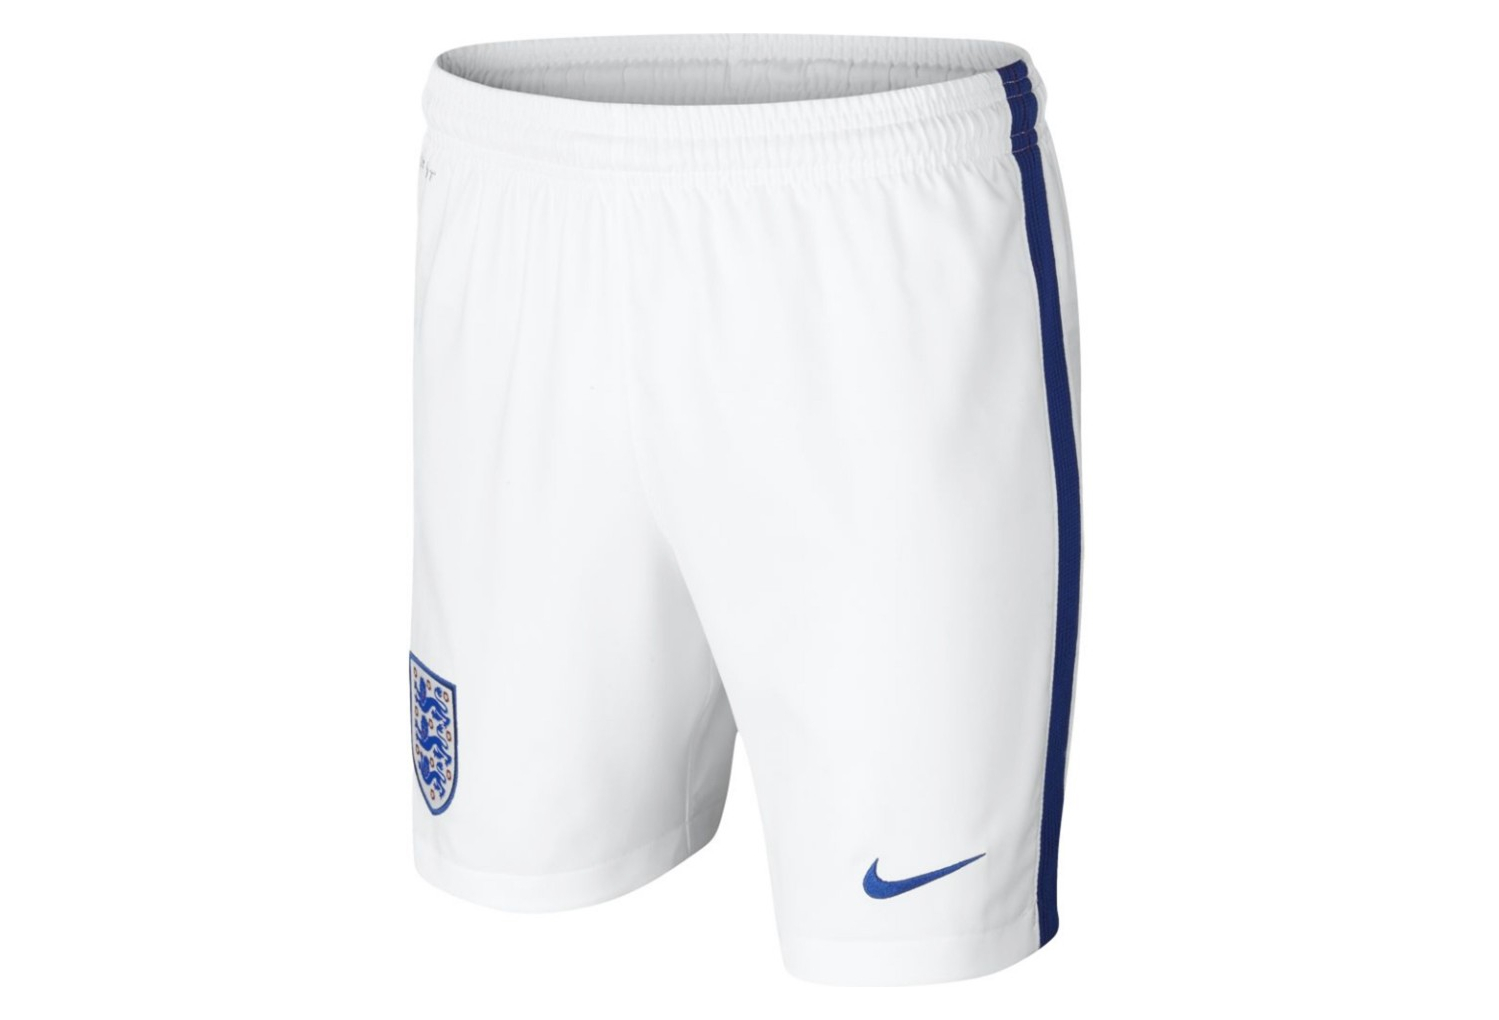 super specials exclusive deals size 7 Angleterre Garçon Homme Short Football Blanc Nike